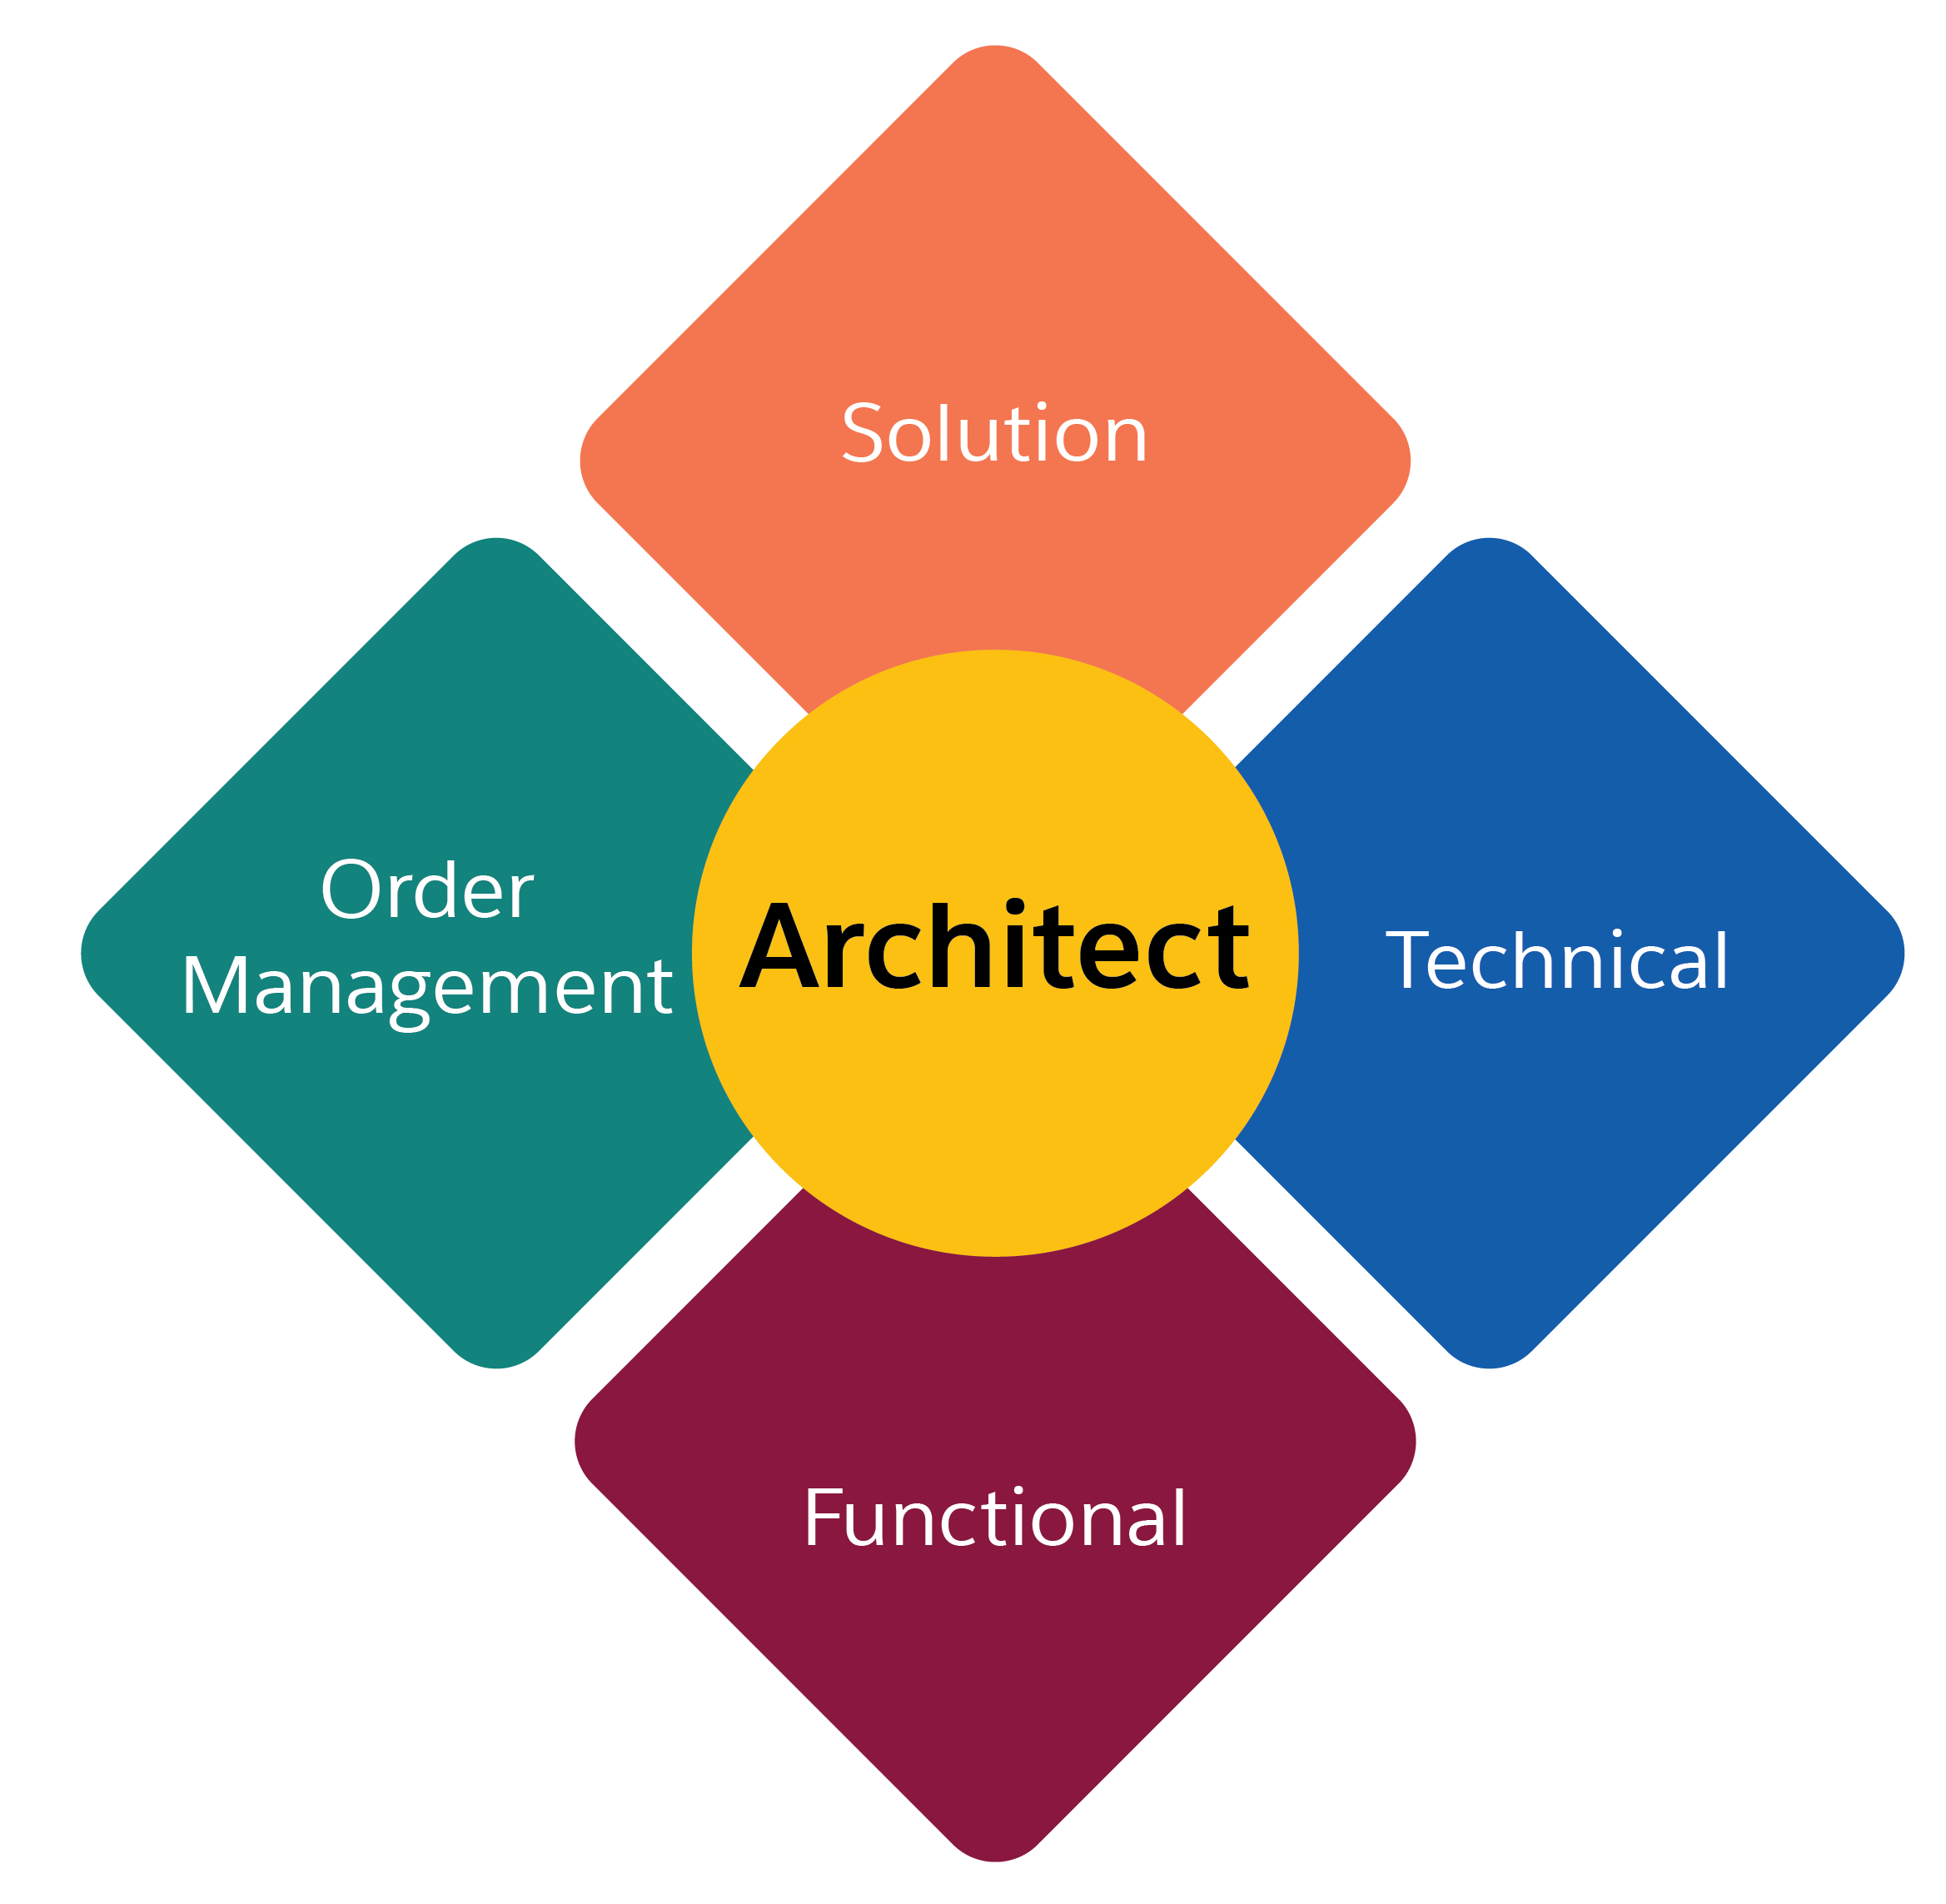 B2C Commerce architects can be functional, technical, technical order management, or solution.